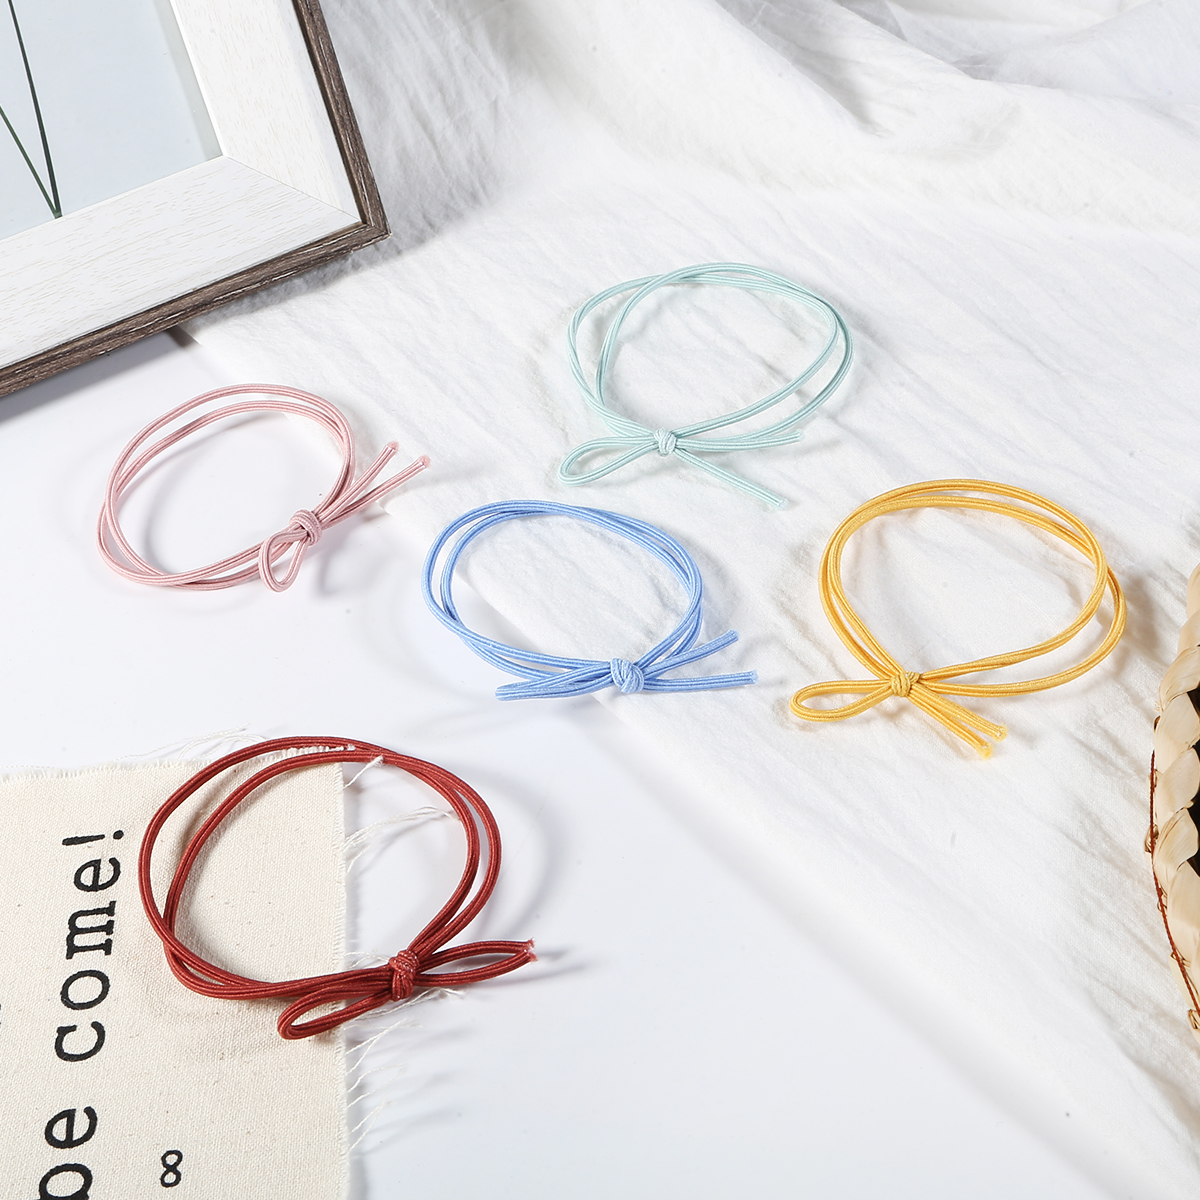 New Arrival Japanese And Korean Style Leather Case Elasitc Hair Bands Rubber Bands Simple Hair Ponytail Holder Hair Accessories